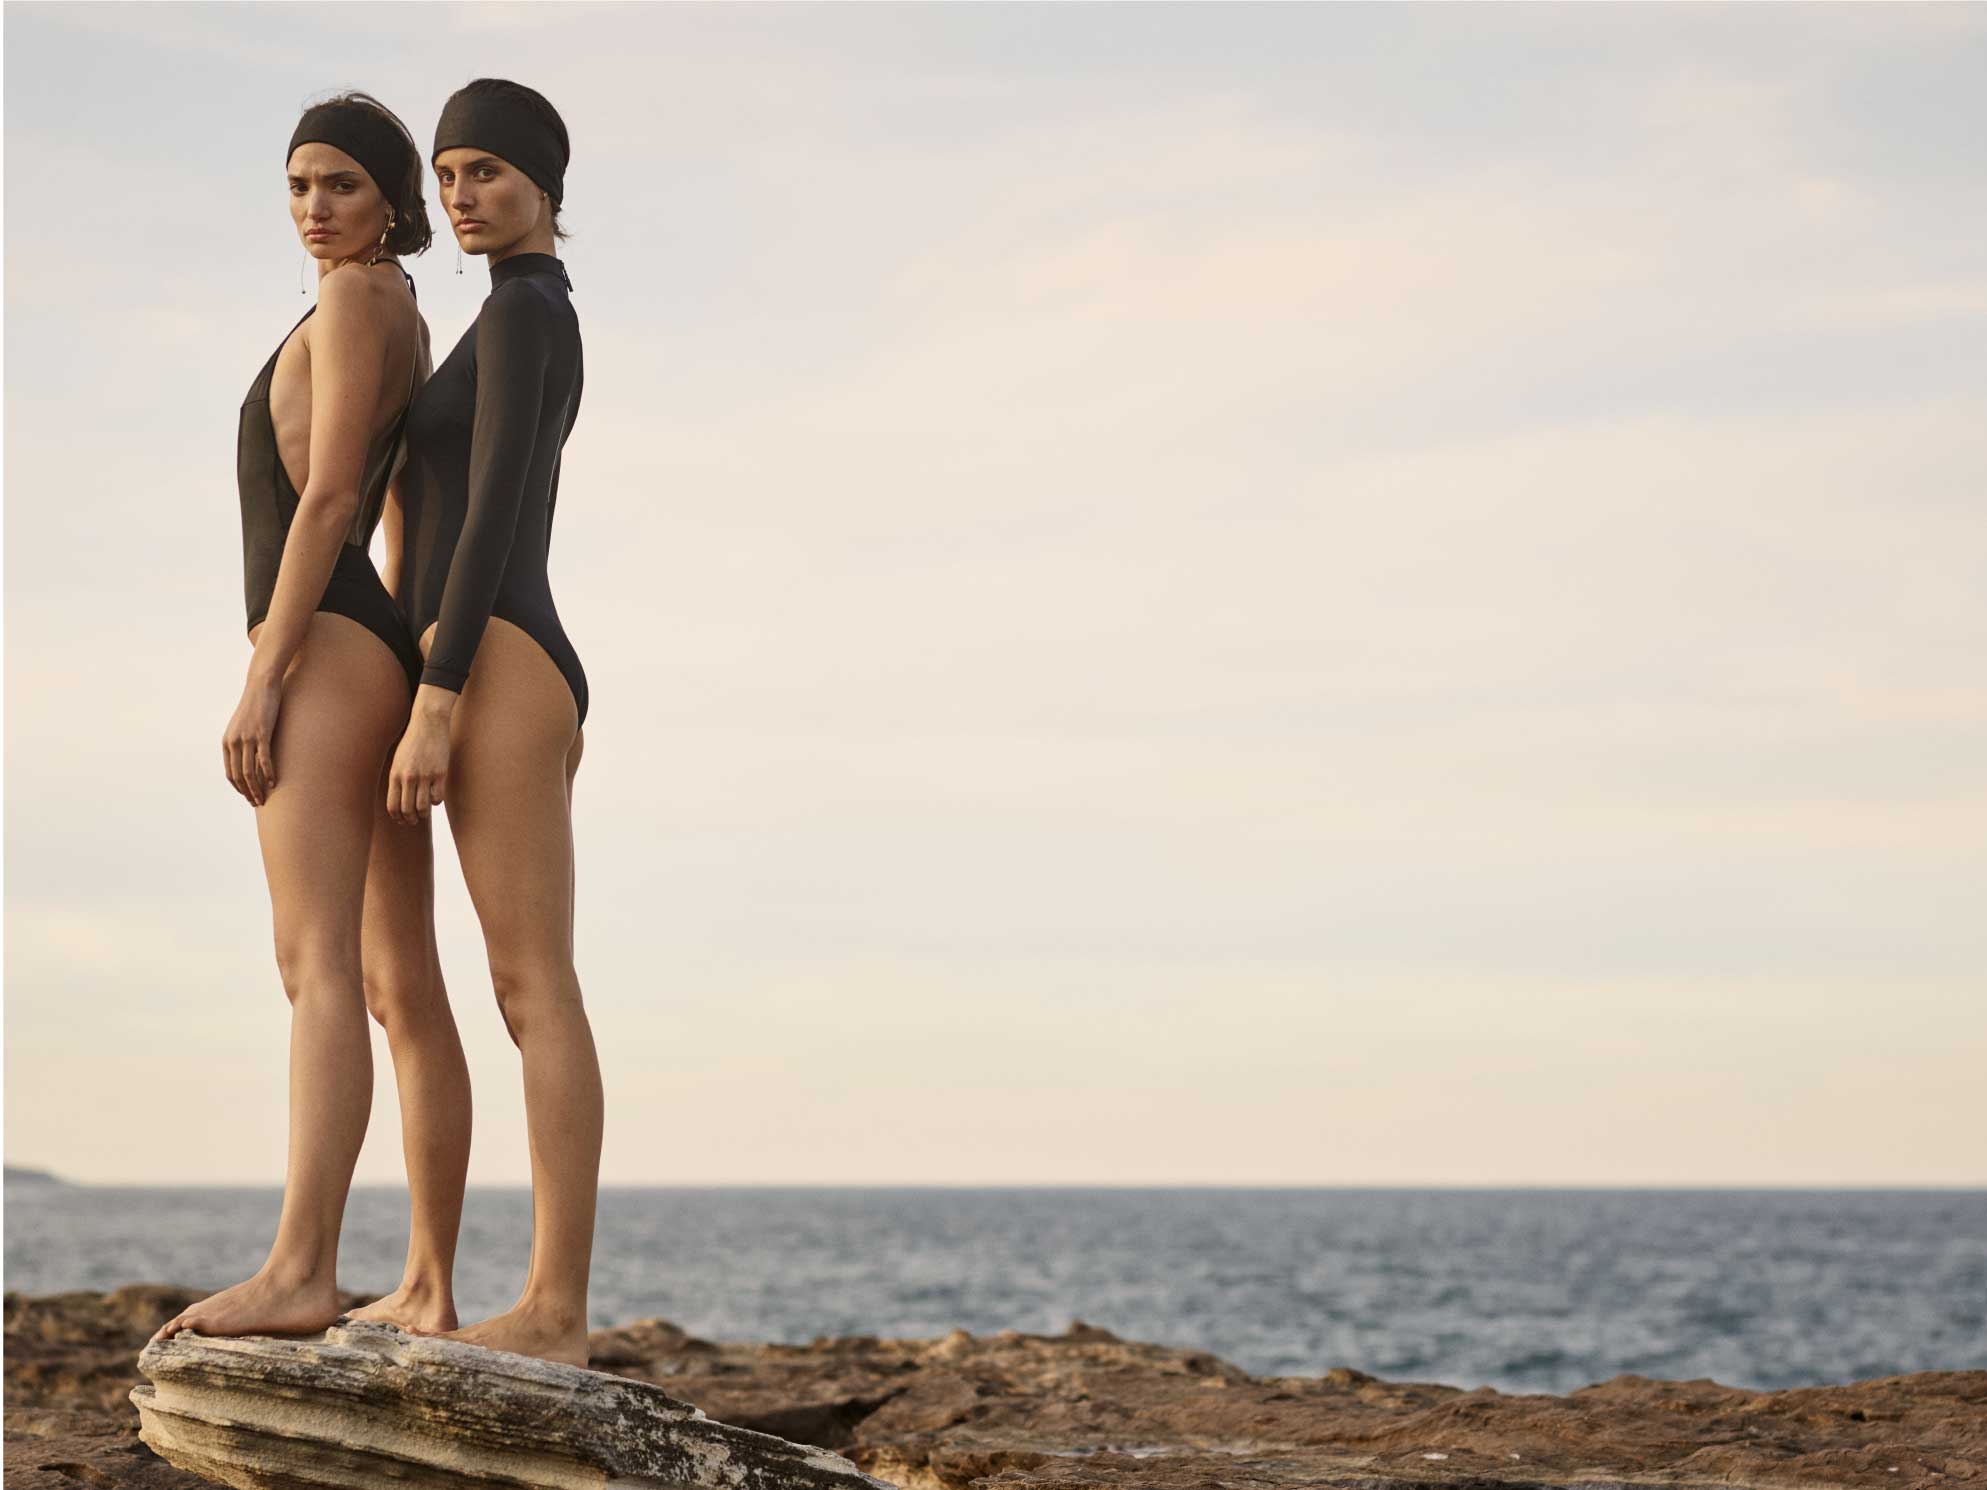 BONDI BORN's Resort 20 Collection debuts our Knots collection of elegant one pieces, bikini tops and bottoms.